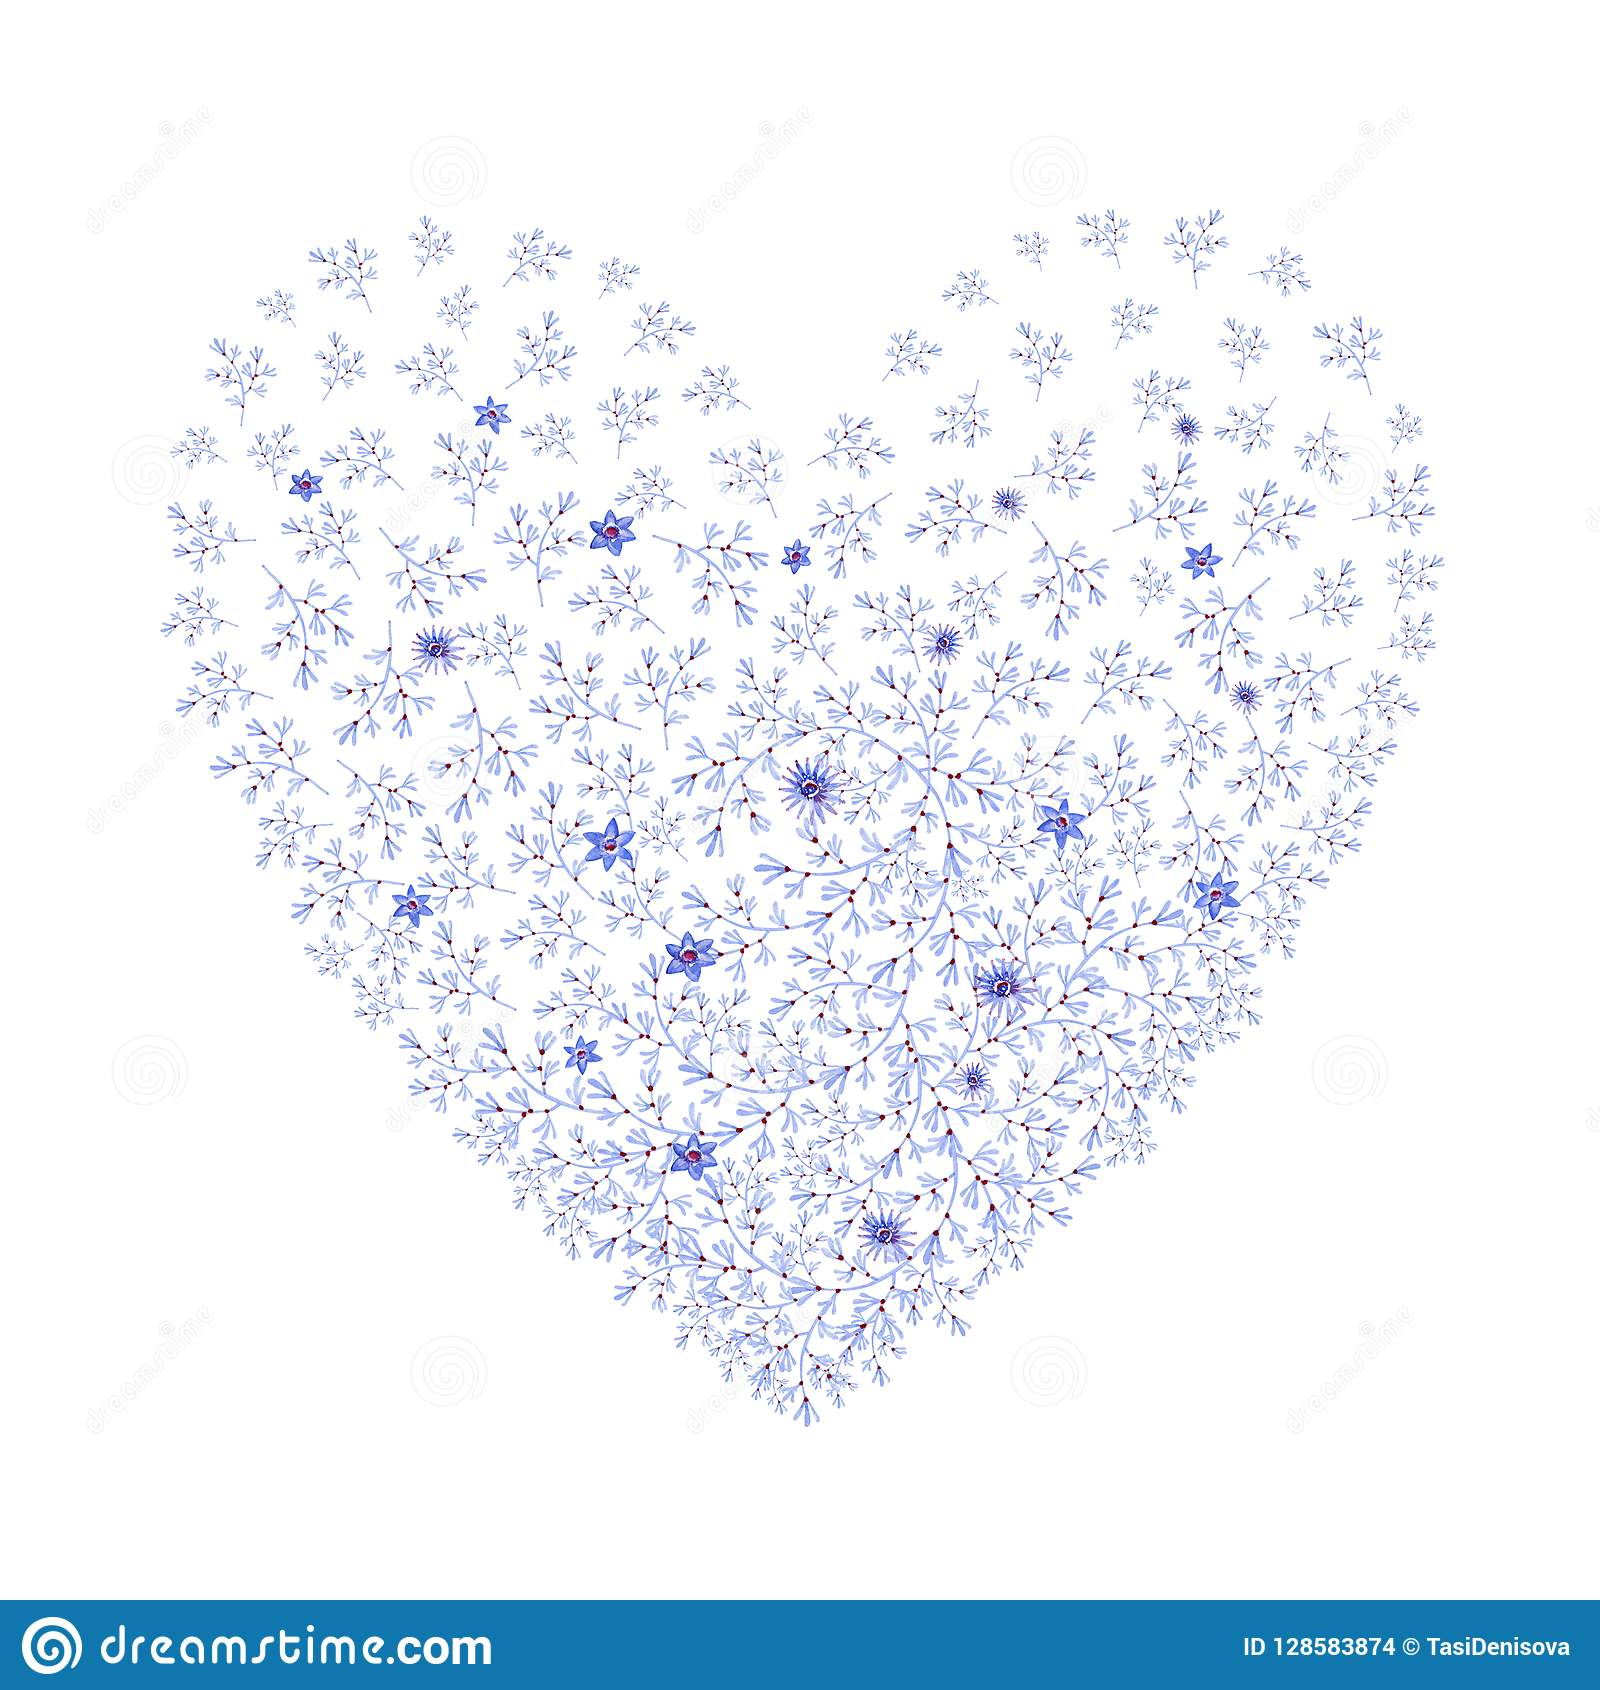 hight resolution of natural blue heart shaped with flowers cliparts for wedding design artistic creation